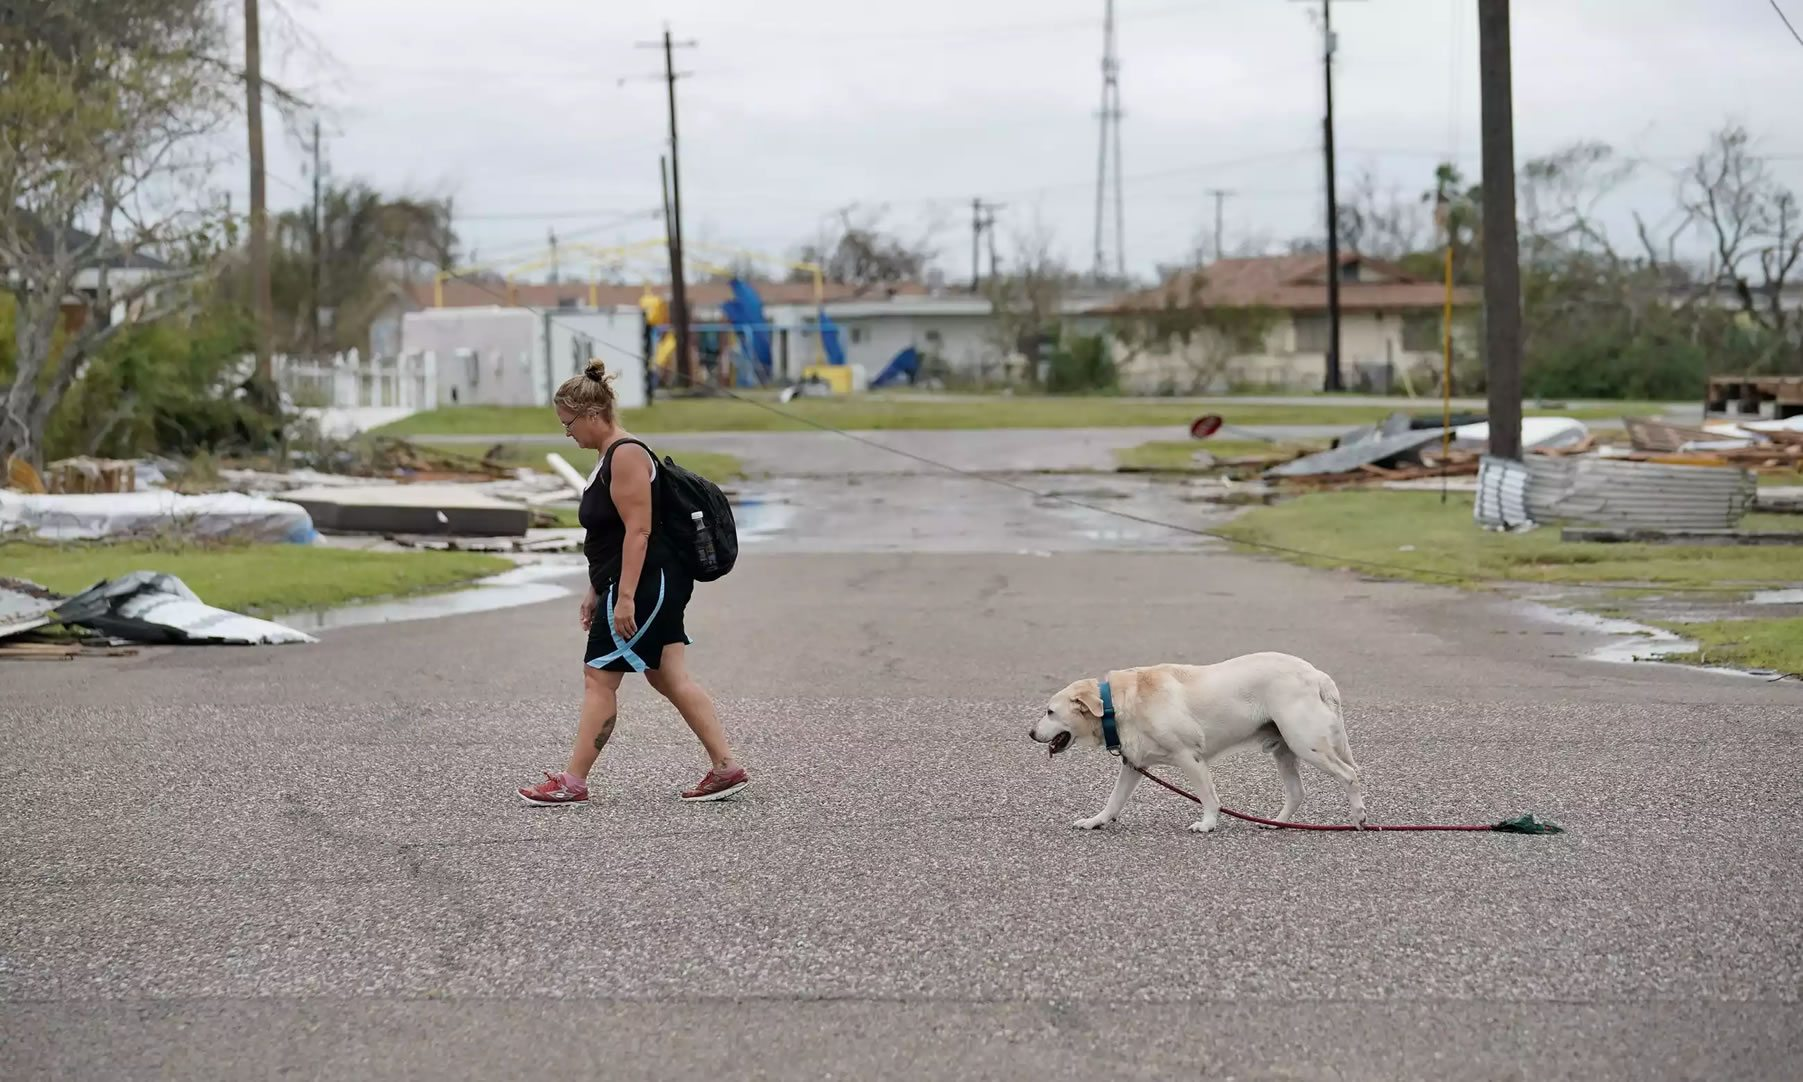 How do cities rebuild after hurricanes like Harvey and Irma?